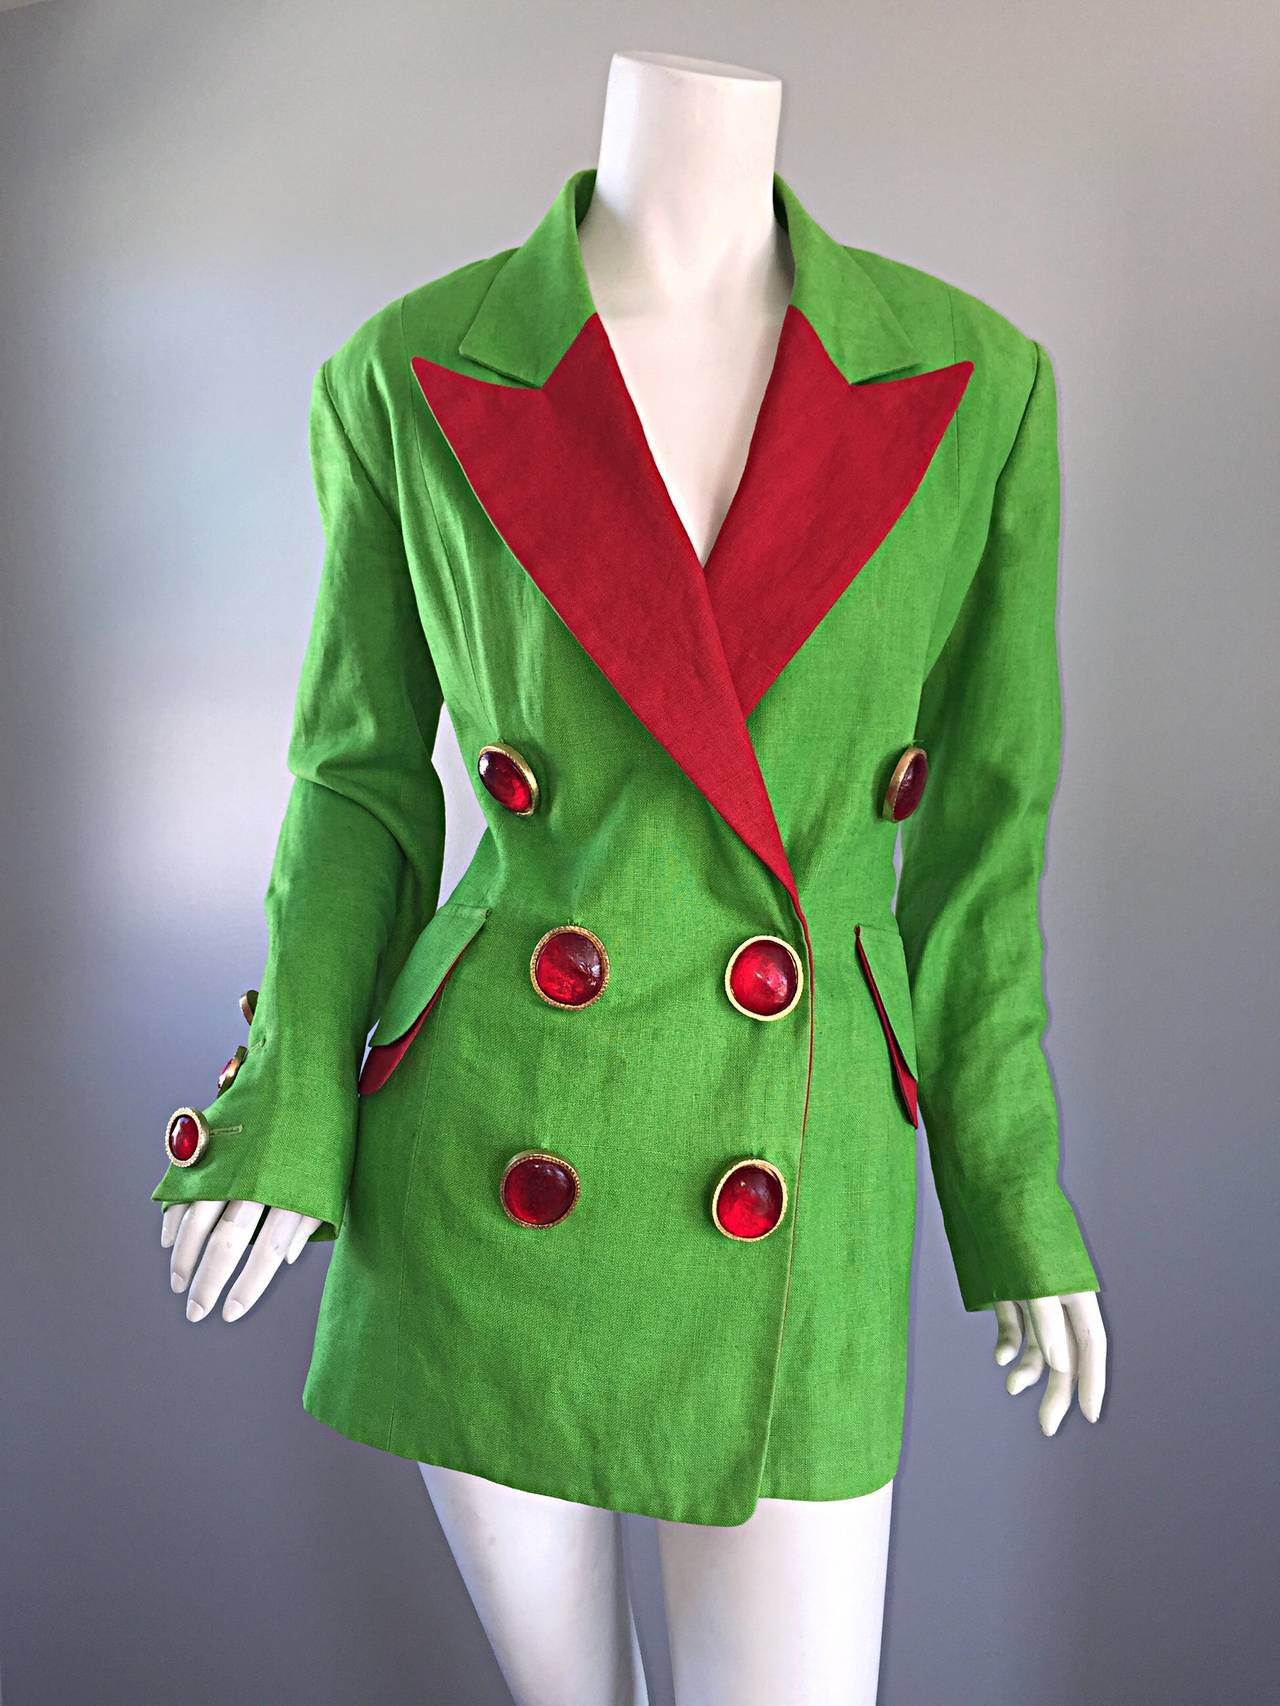 Women's Incredible Vintage Gemma Kahng Green + Red Blazer w/ Gripoix Buttons For Sale